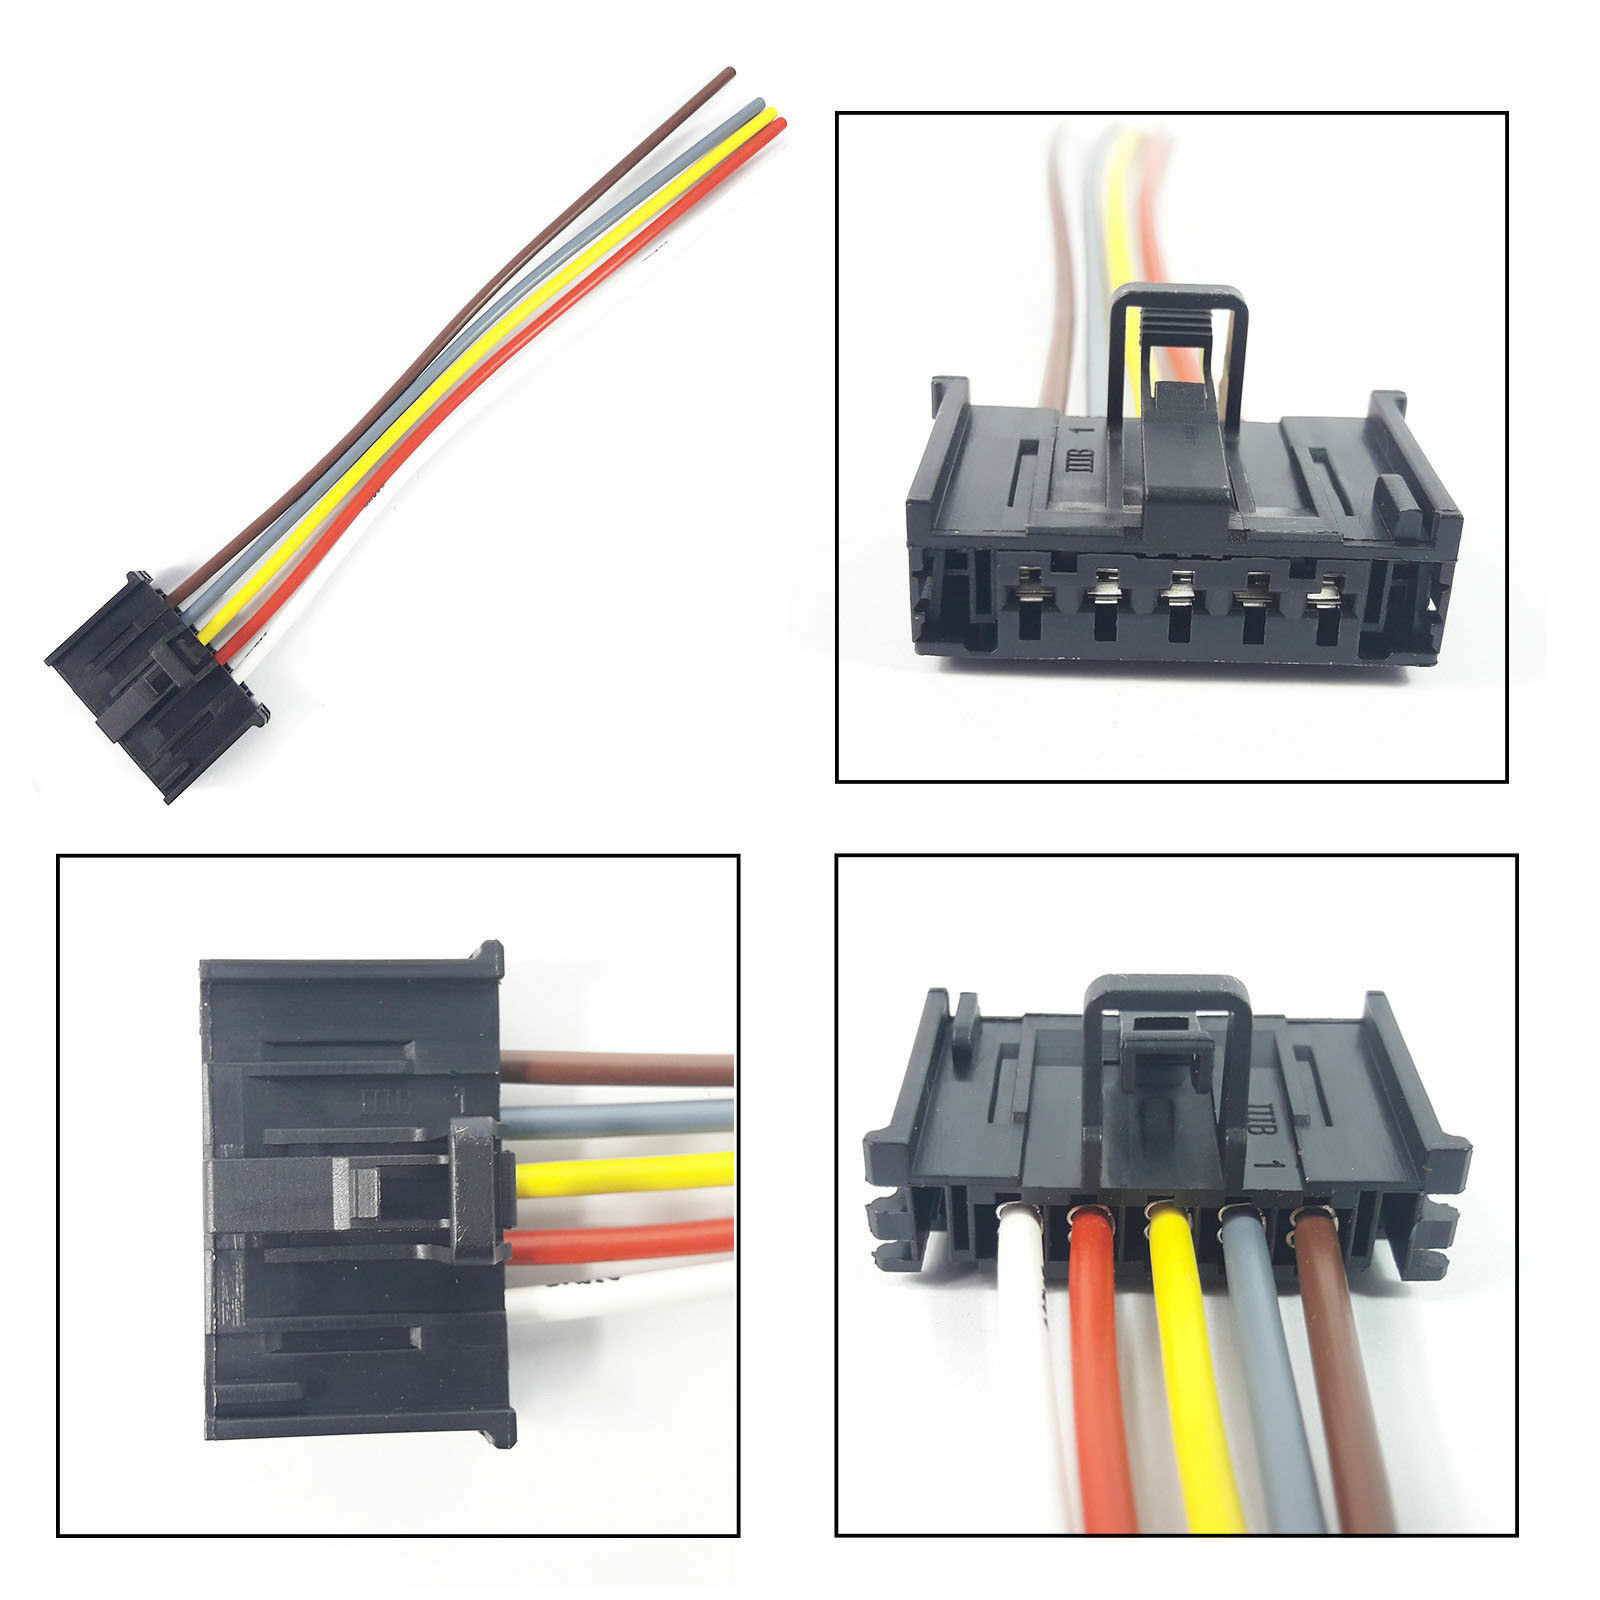 Fiat Wiring Harness Ducato Punto Stop Plug Extension Loom 5 Pin 1 Of 1free Shipping